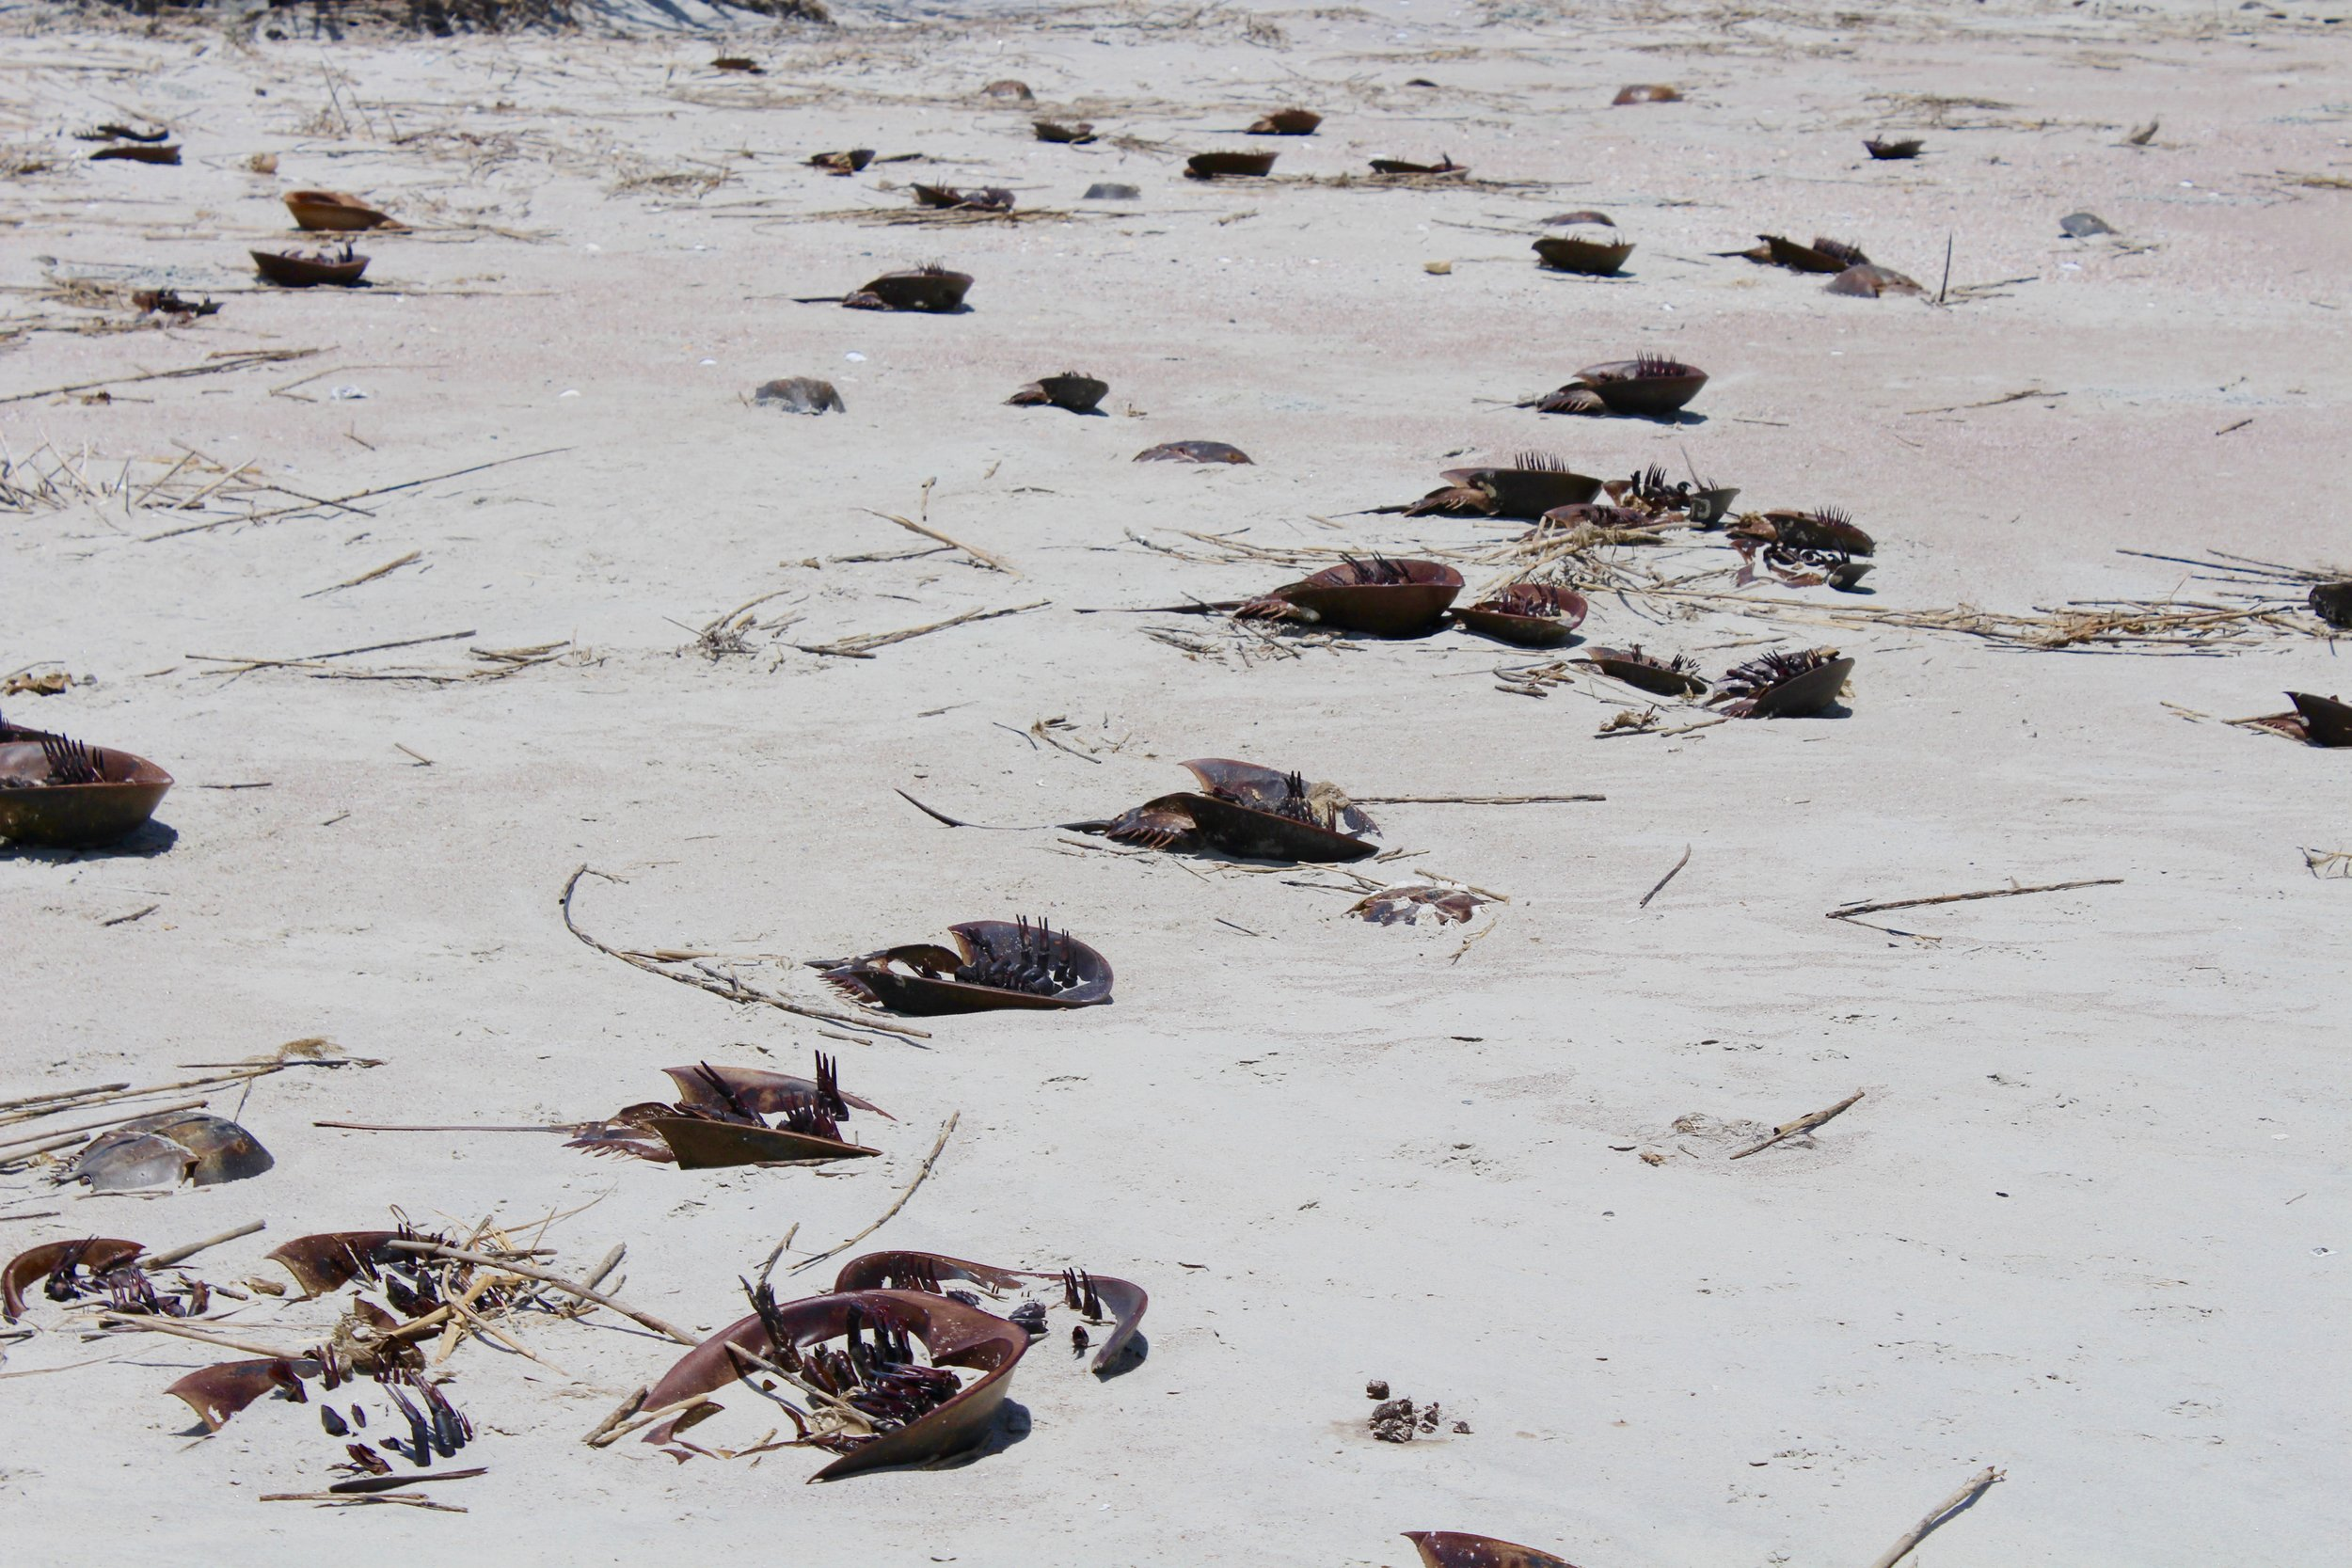 Rough weather strands many crabs on the beach each year. (Photo: E. Weeks/SCDNR)